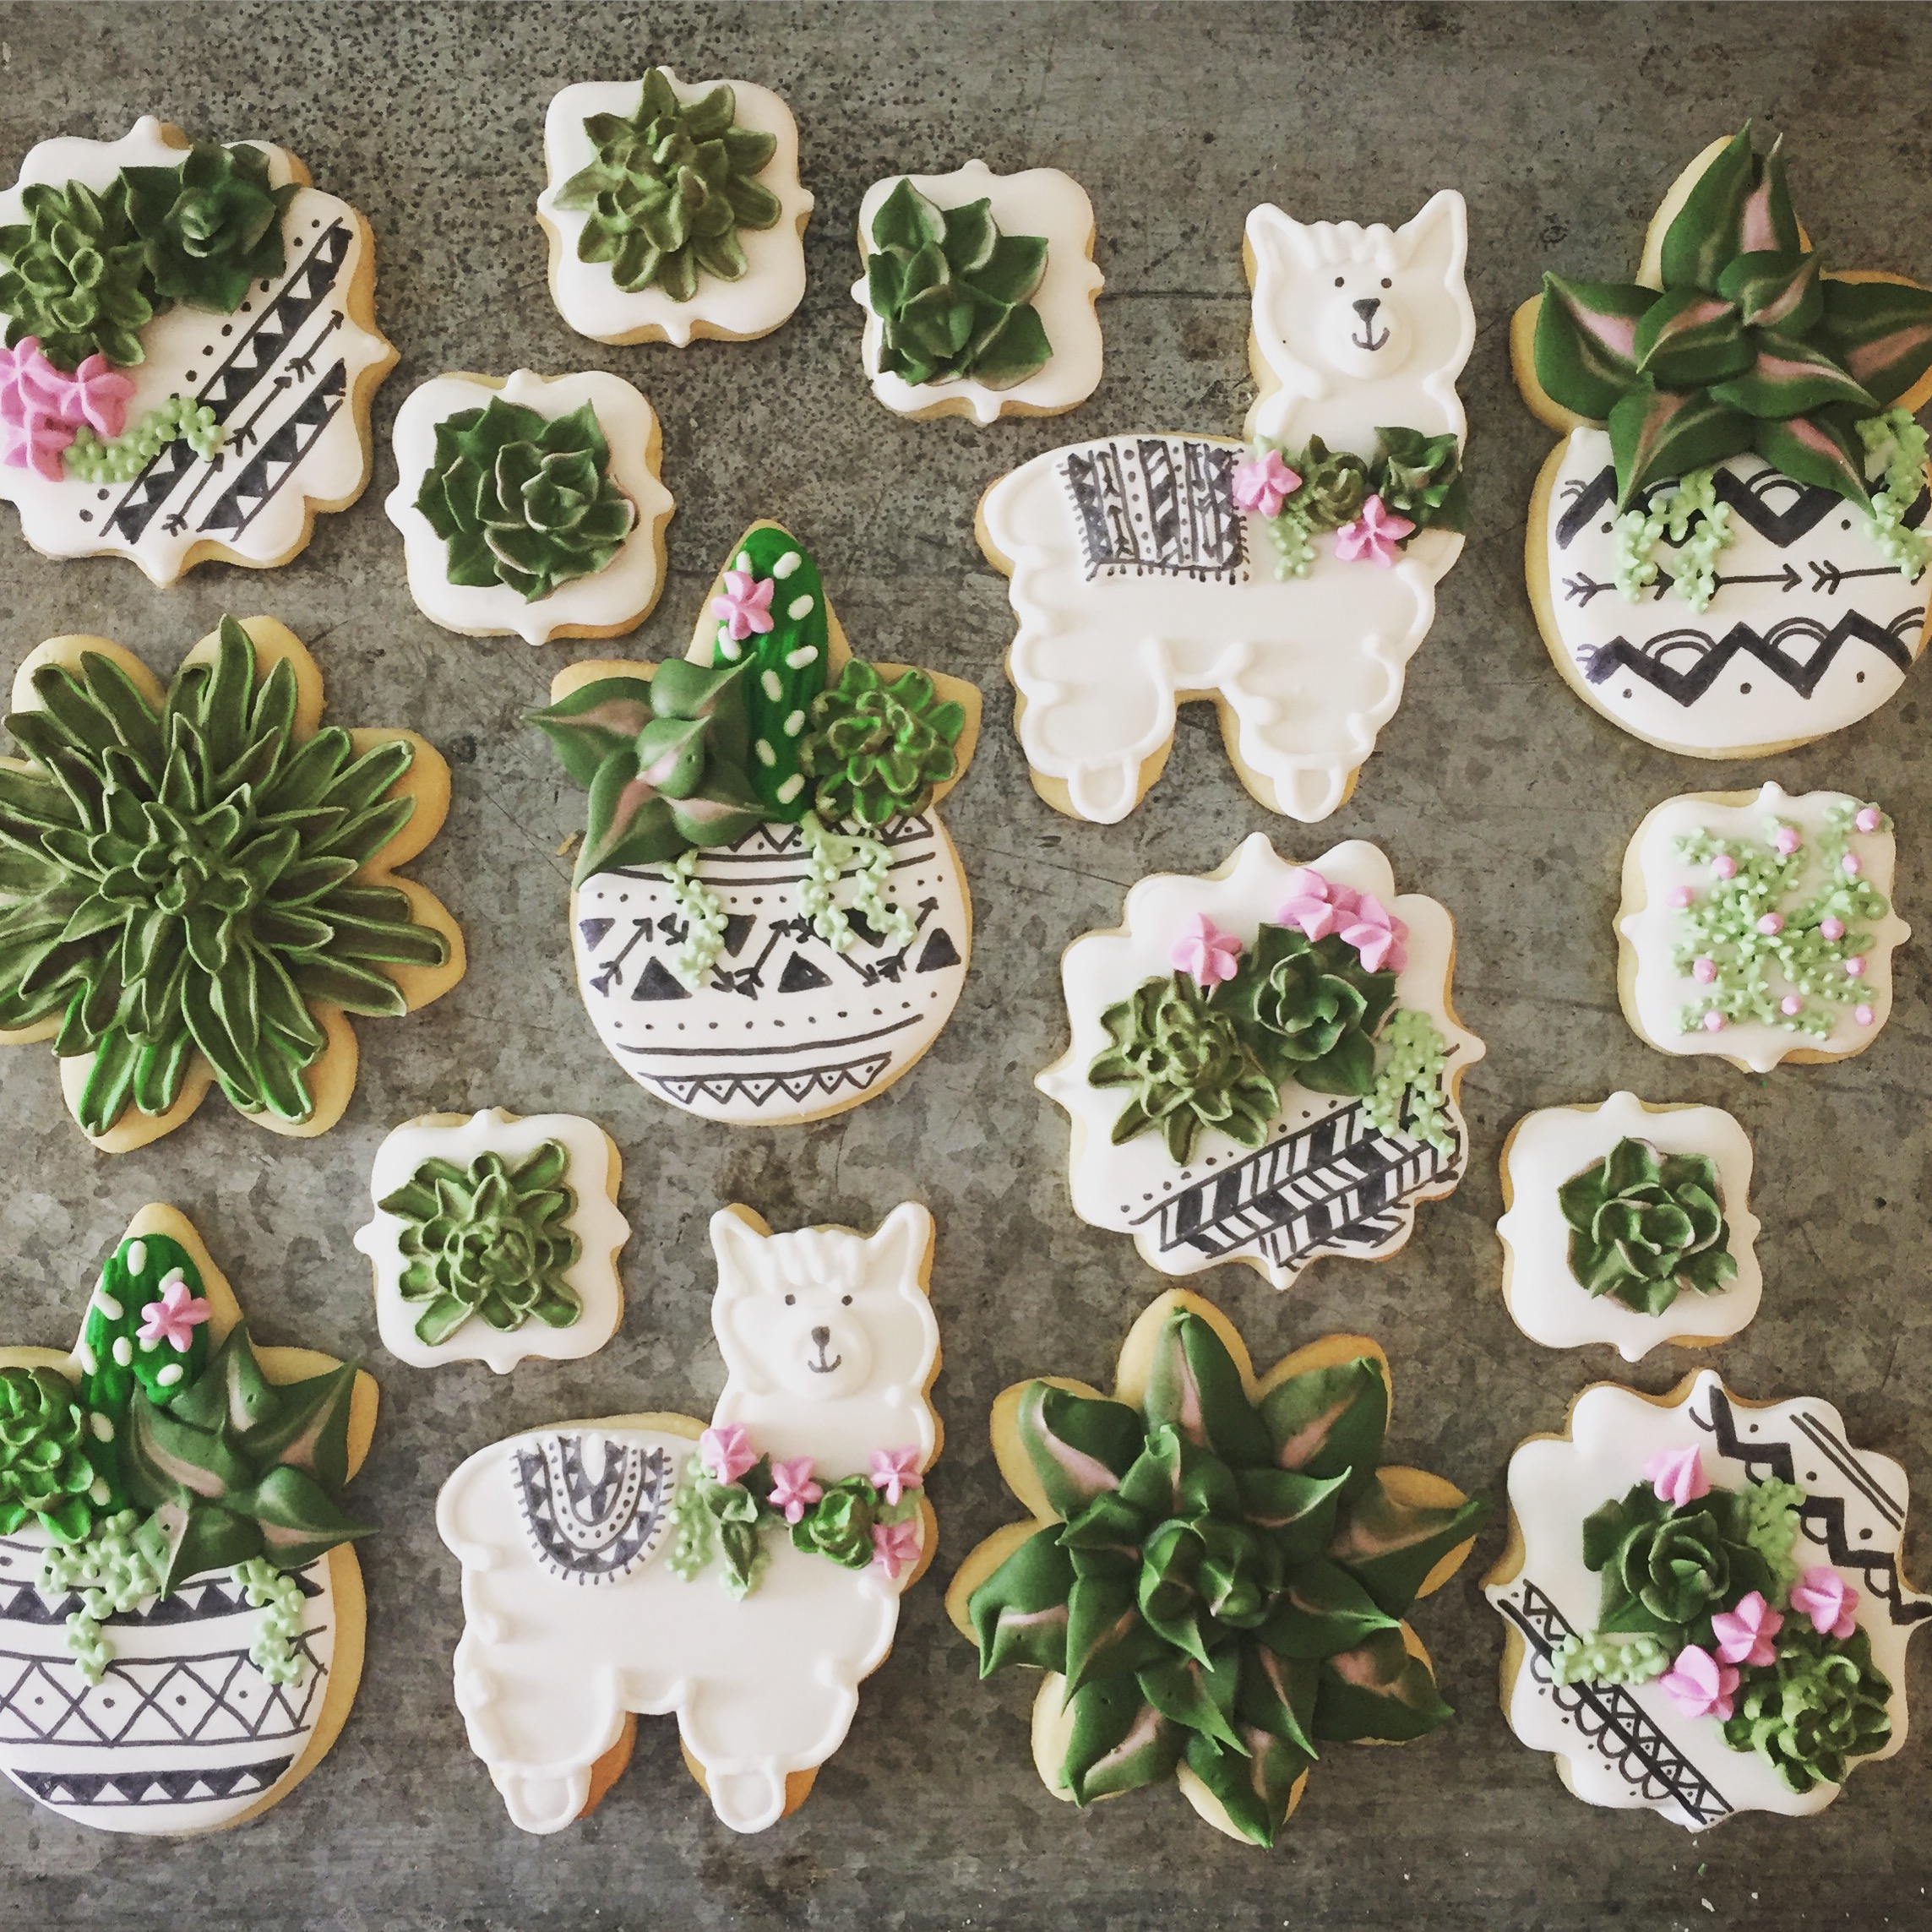 Boho Succulents Llamas Cookies Amuse Bake Shop